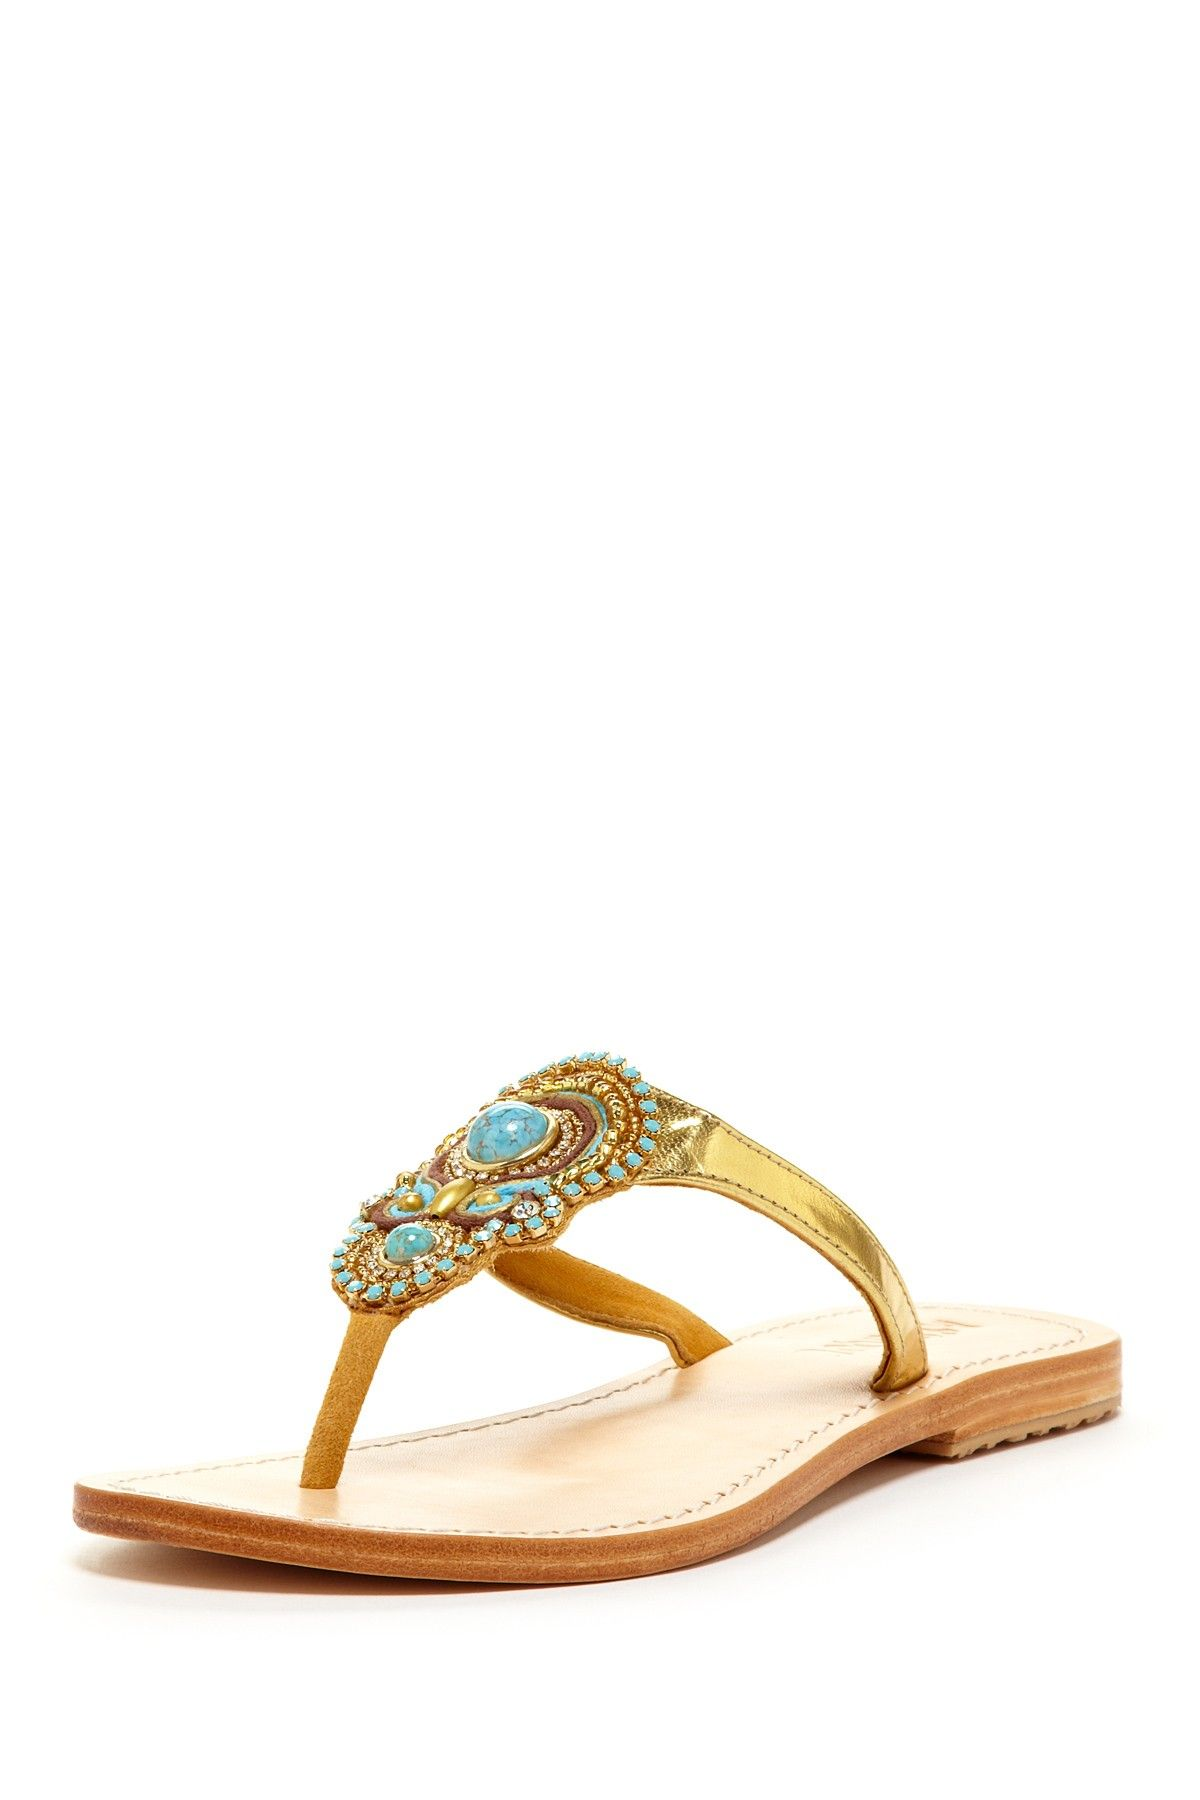 a512f7838472b1 Mystique Beaded Sandal... I would wear these everyday!